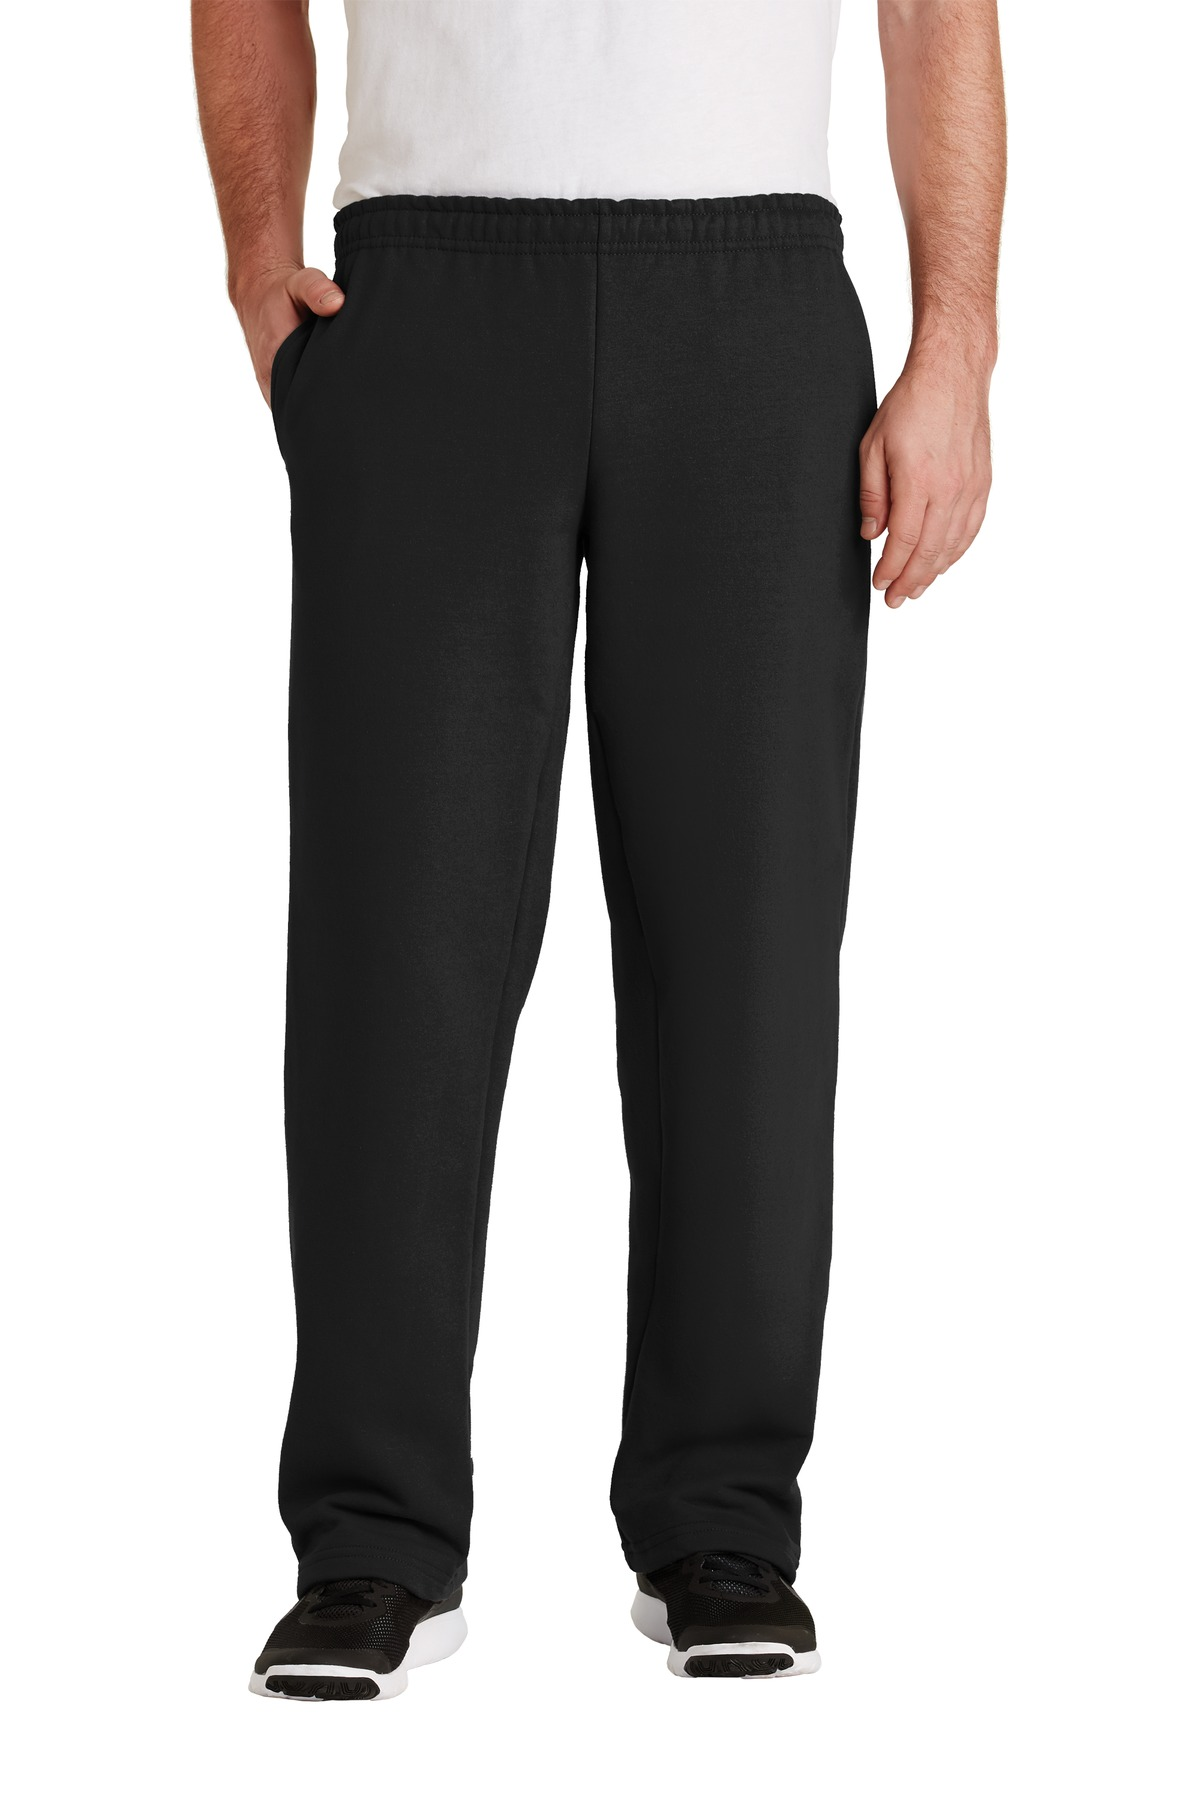 Gildan ®  - DryBlend ®  Open Bottom Sweatpant. 12300 - Black